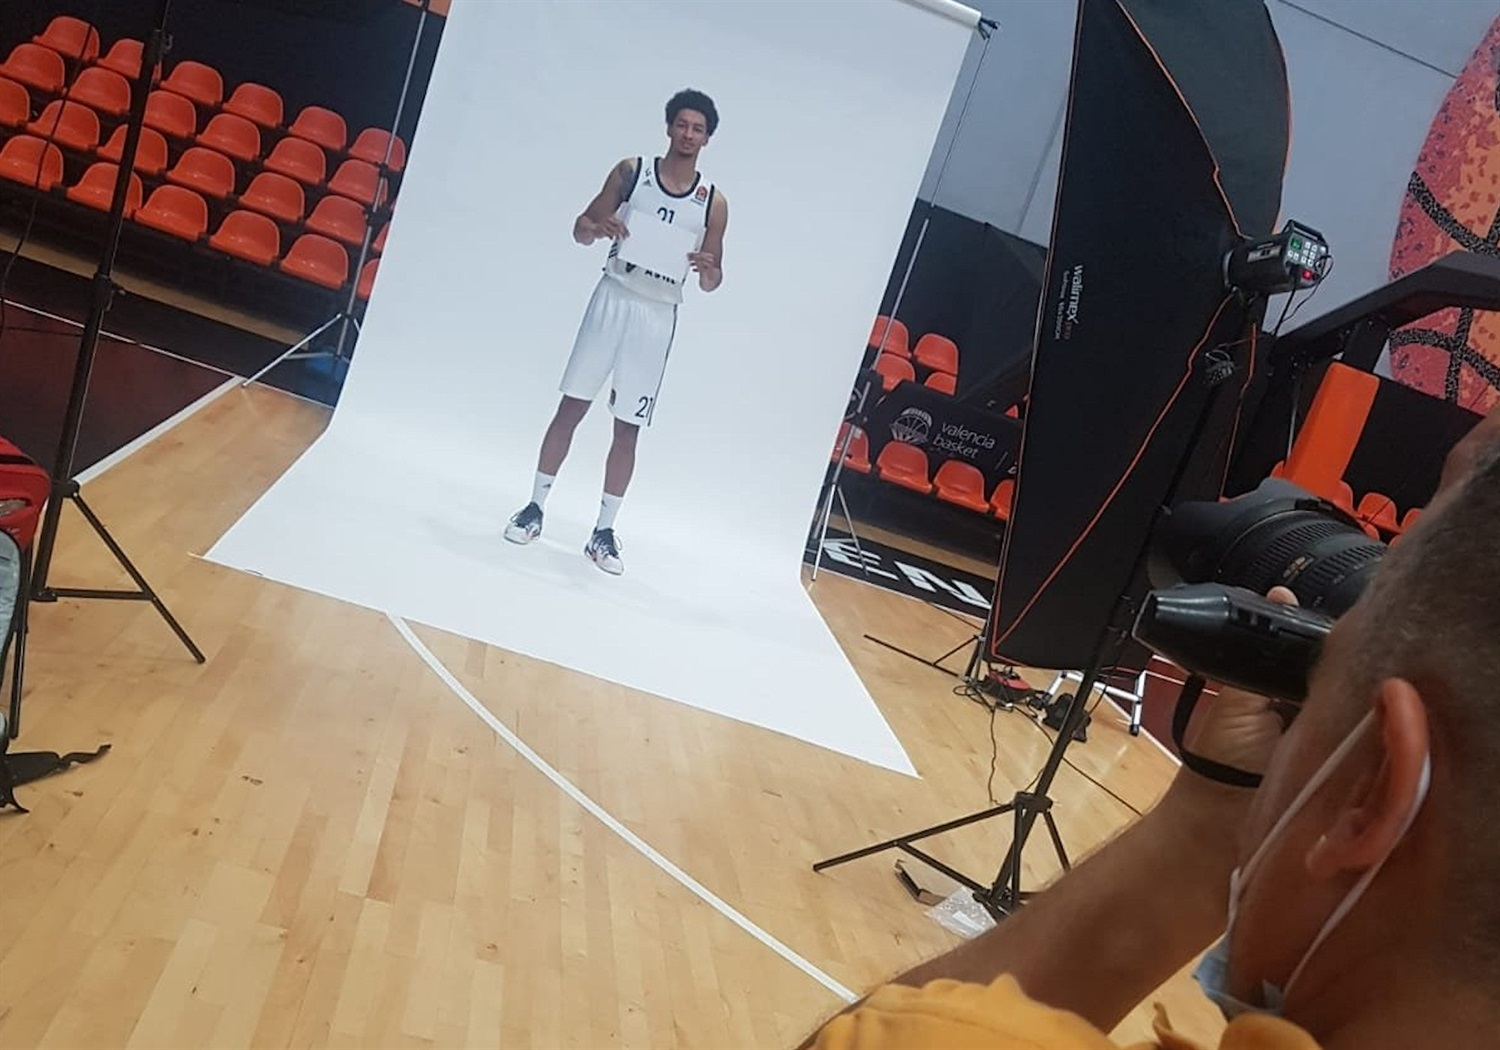 Ismael Bako - LDLC ASVEL Villeurbanne Media Day - EB20